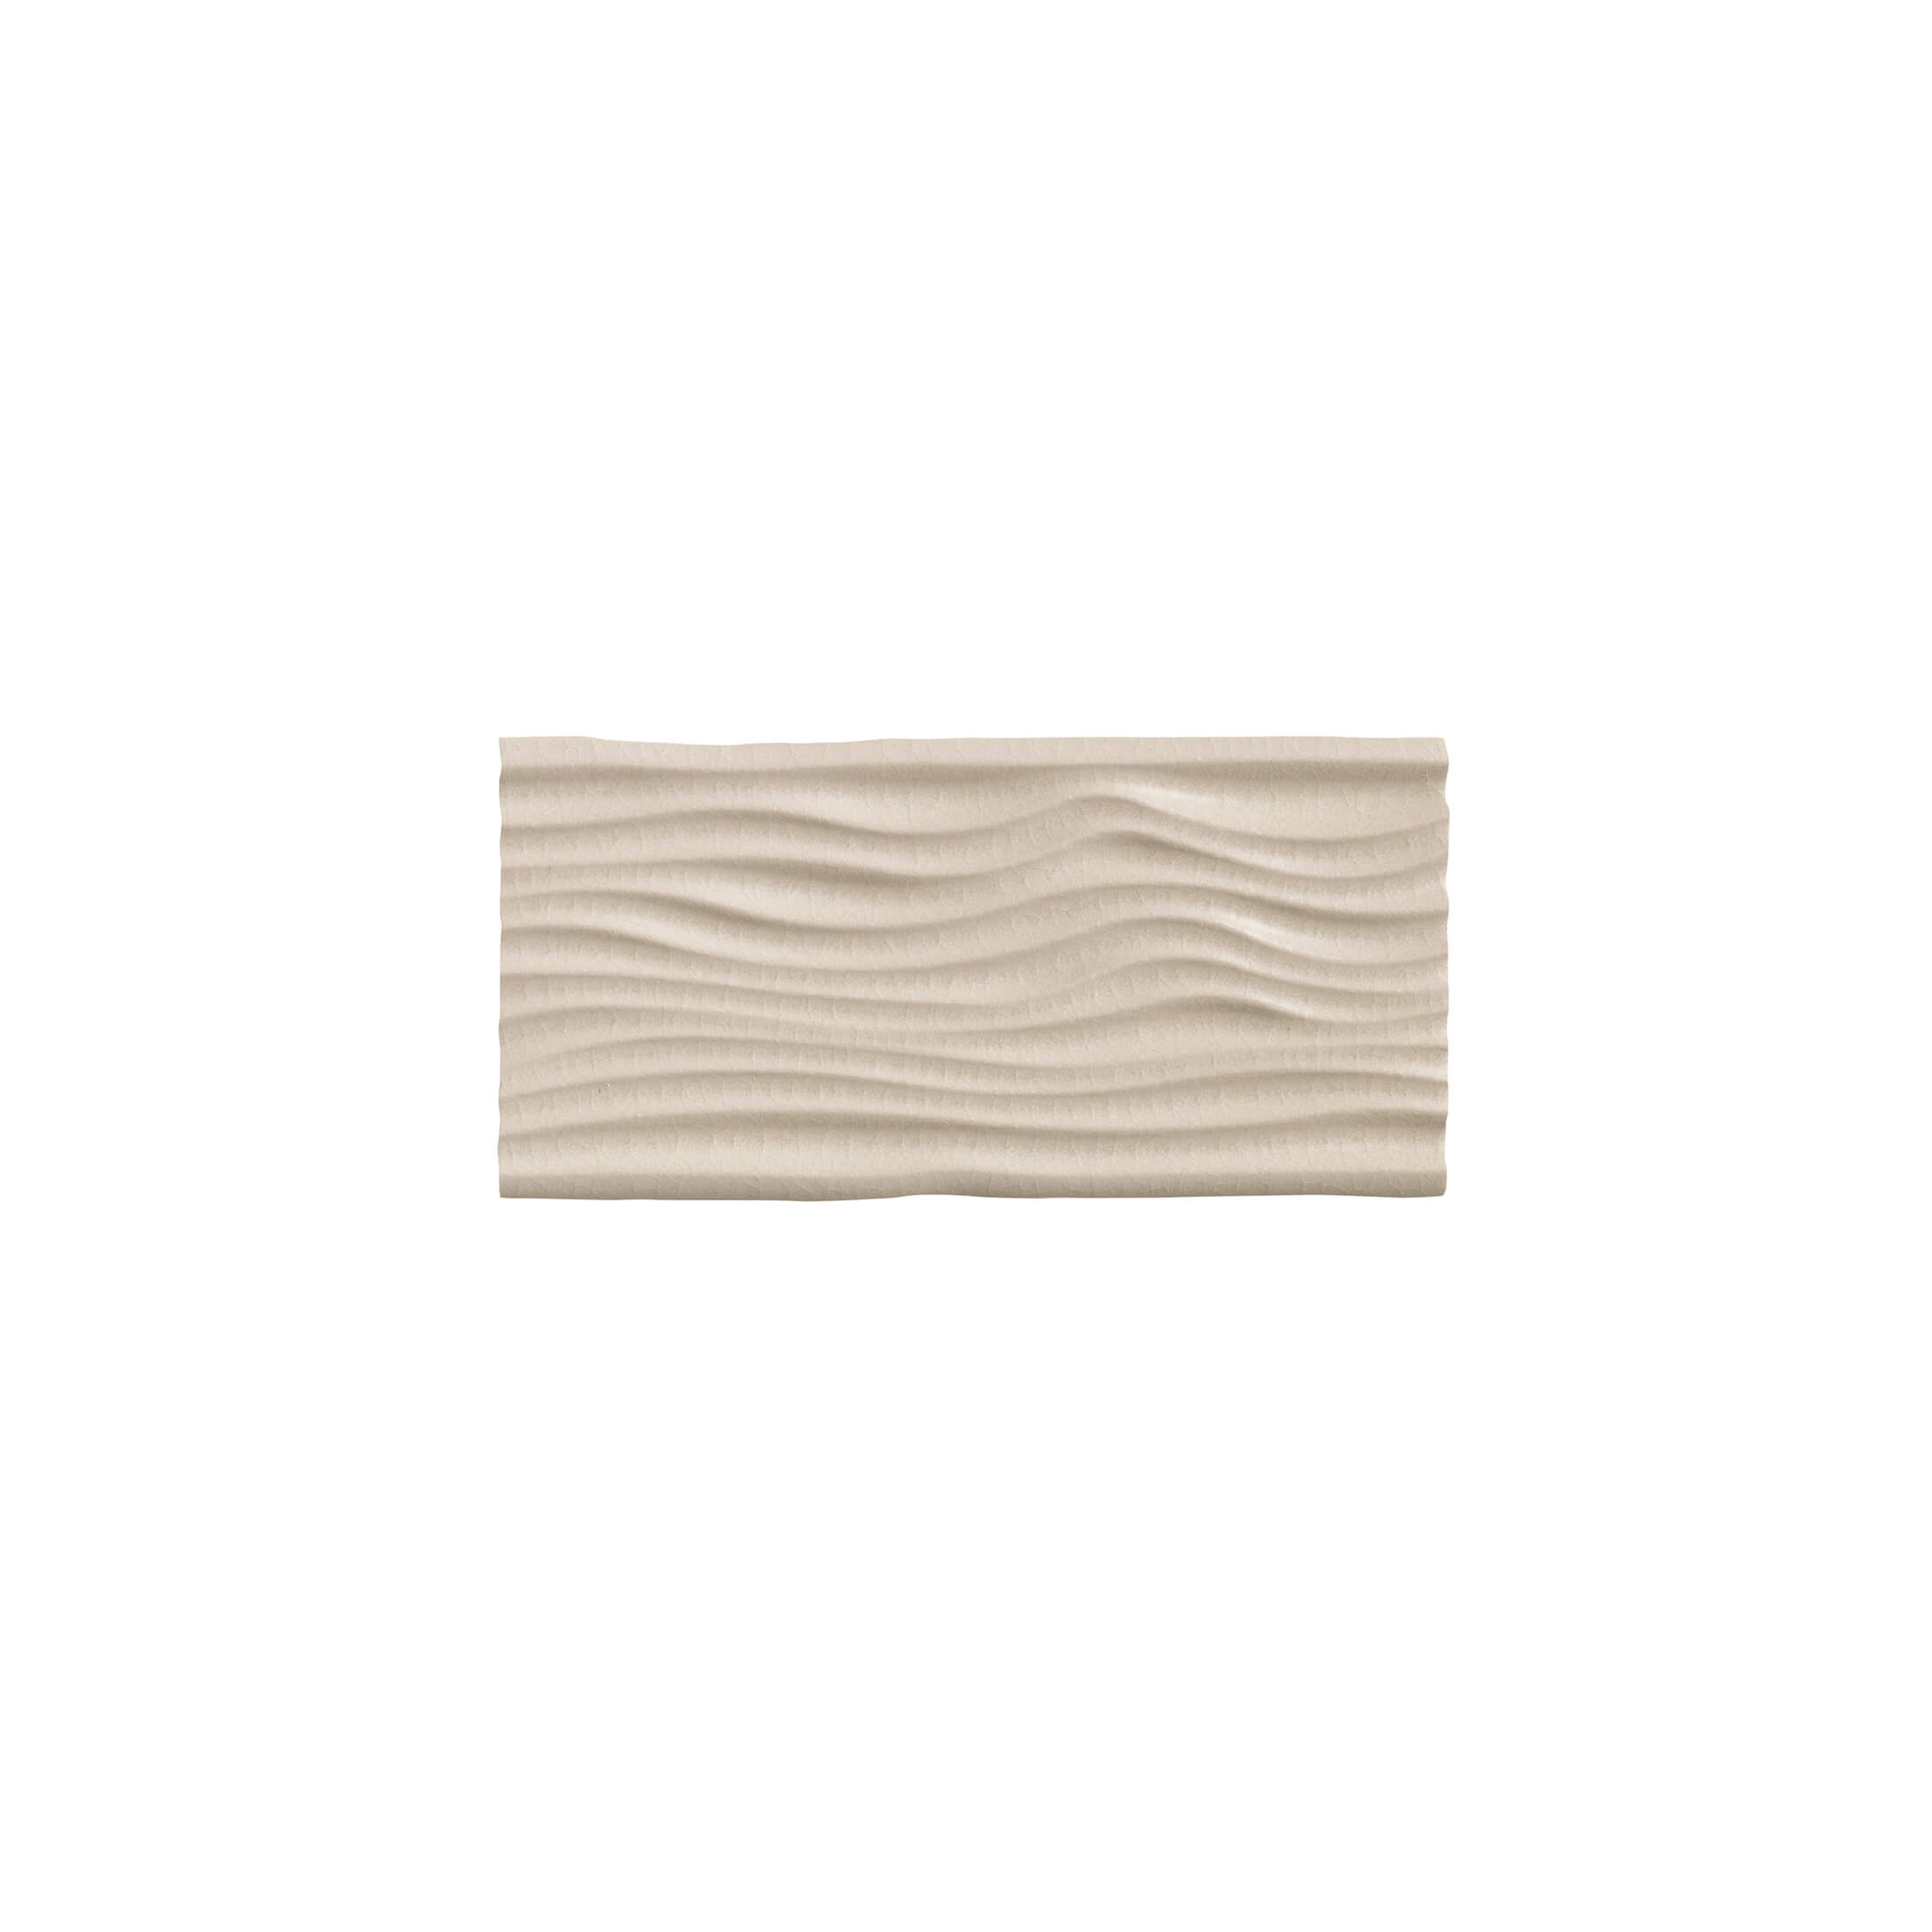 ADEH1011 - LISO WAVES - 7.5 cm X 15 cm